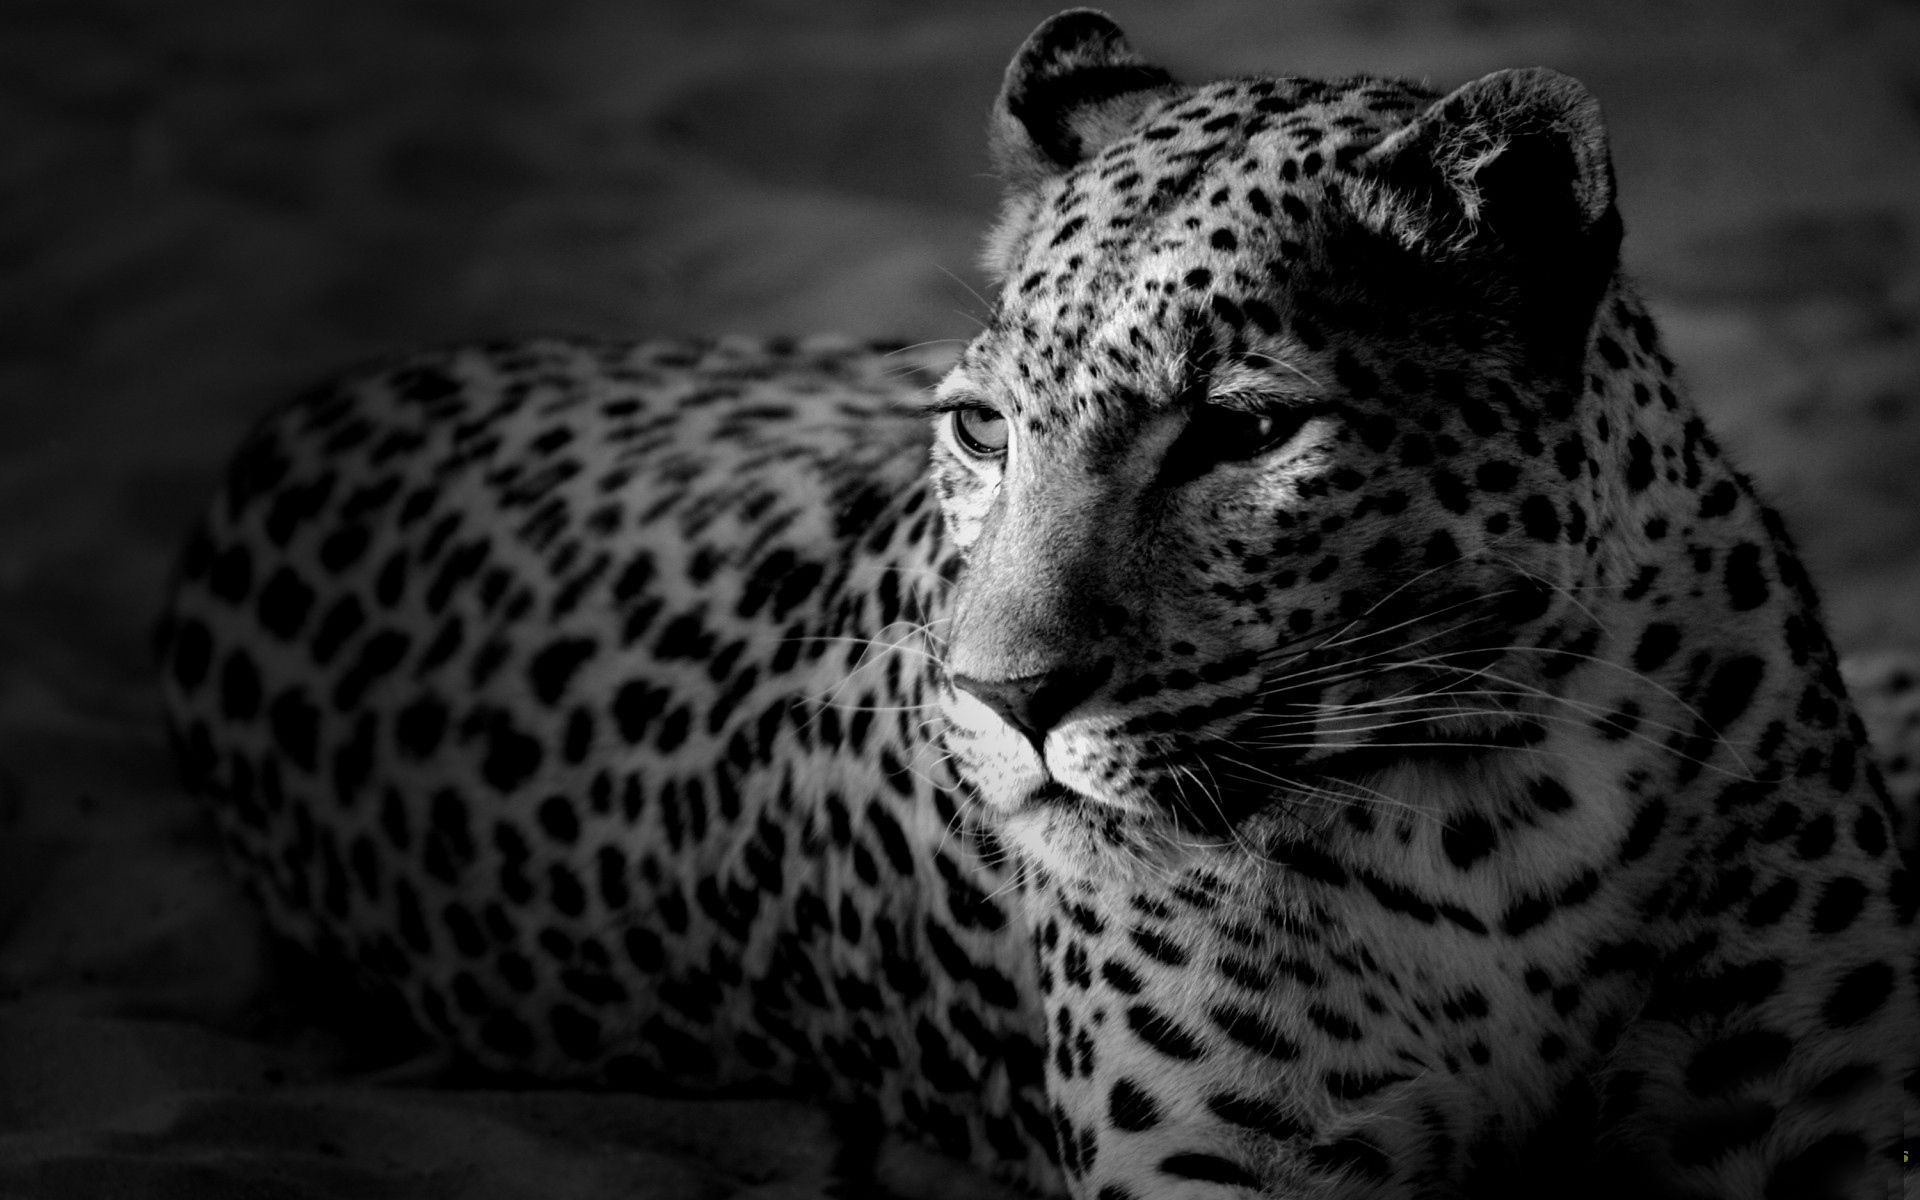 148742 download wallpaper Animals, Leopard, Color, Spotted, Spotty, Bw, Chb screensavers and pictures for free